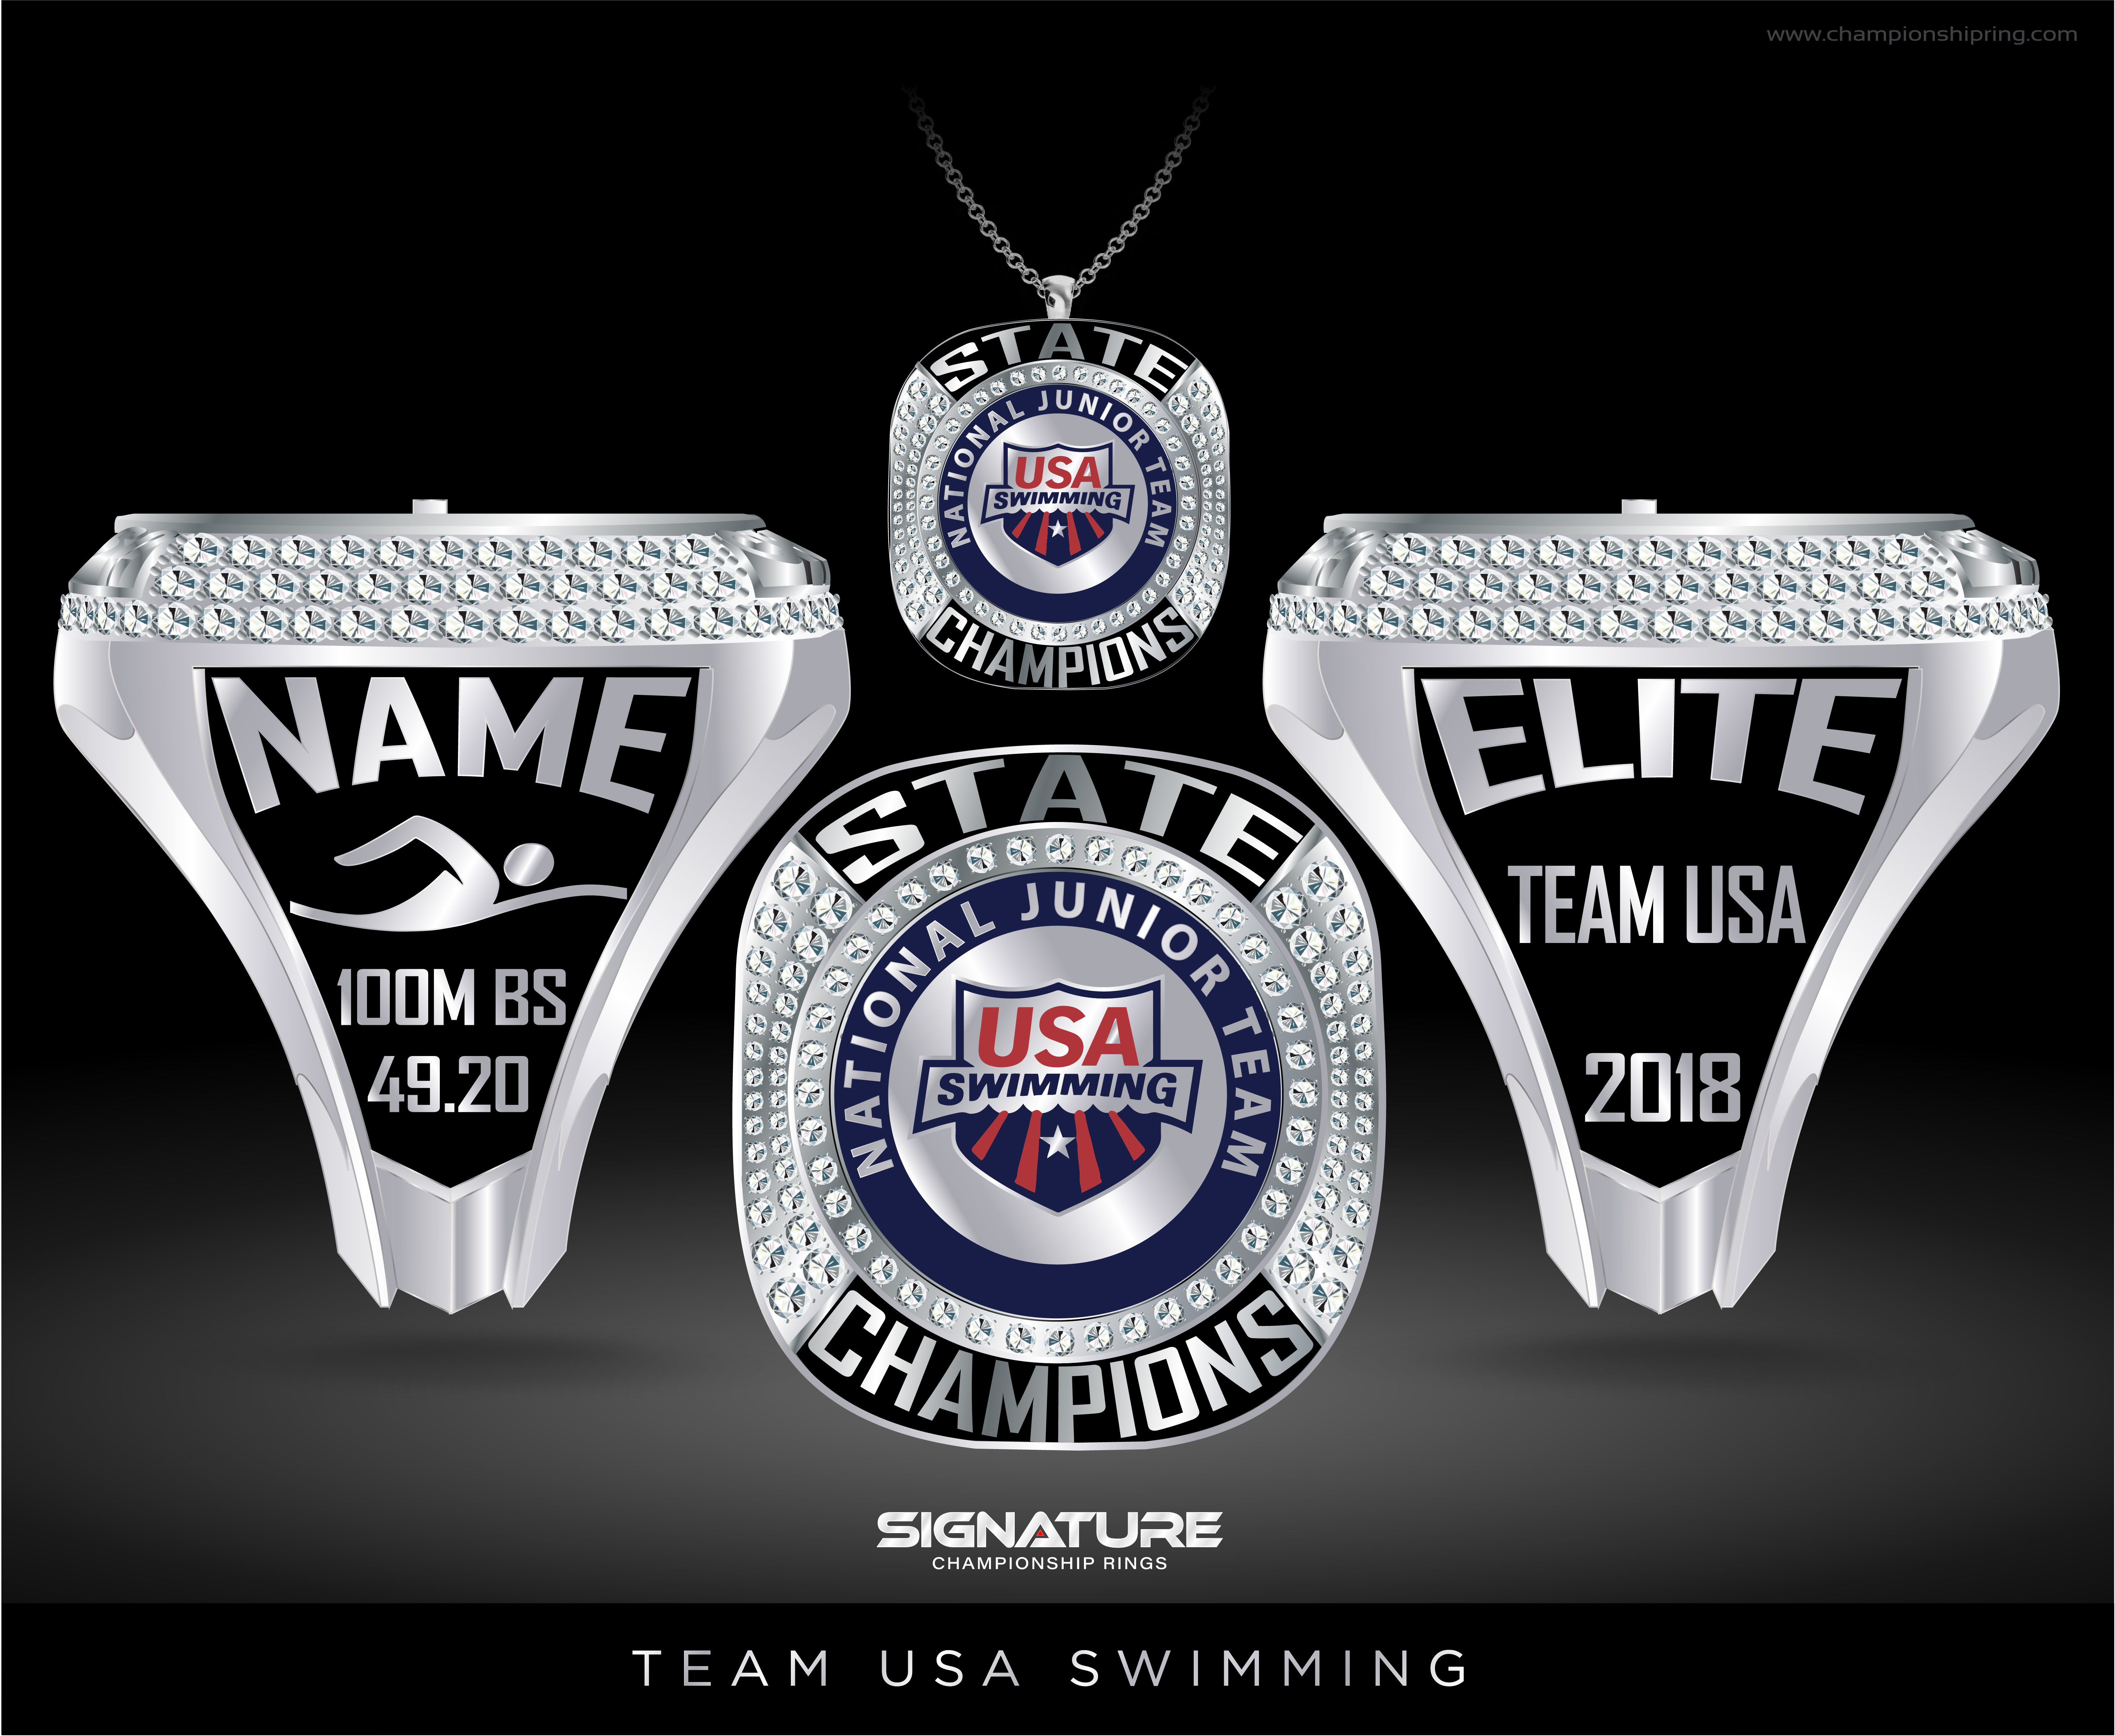 Championship Ring Design Studio: Swimming and Diving